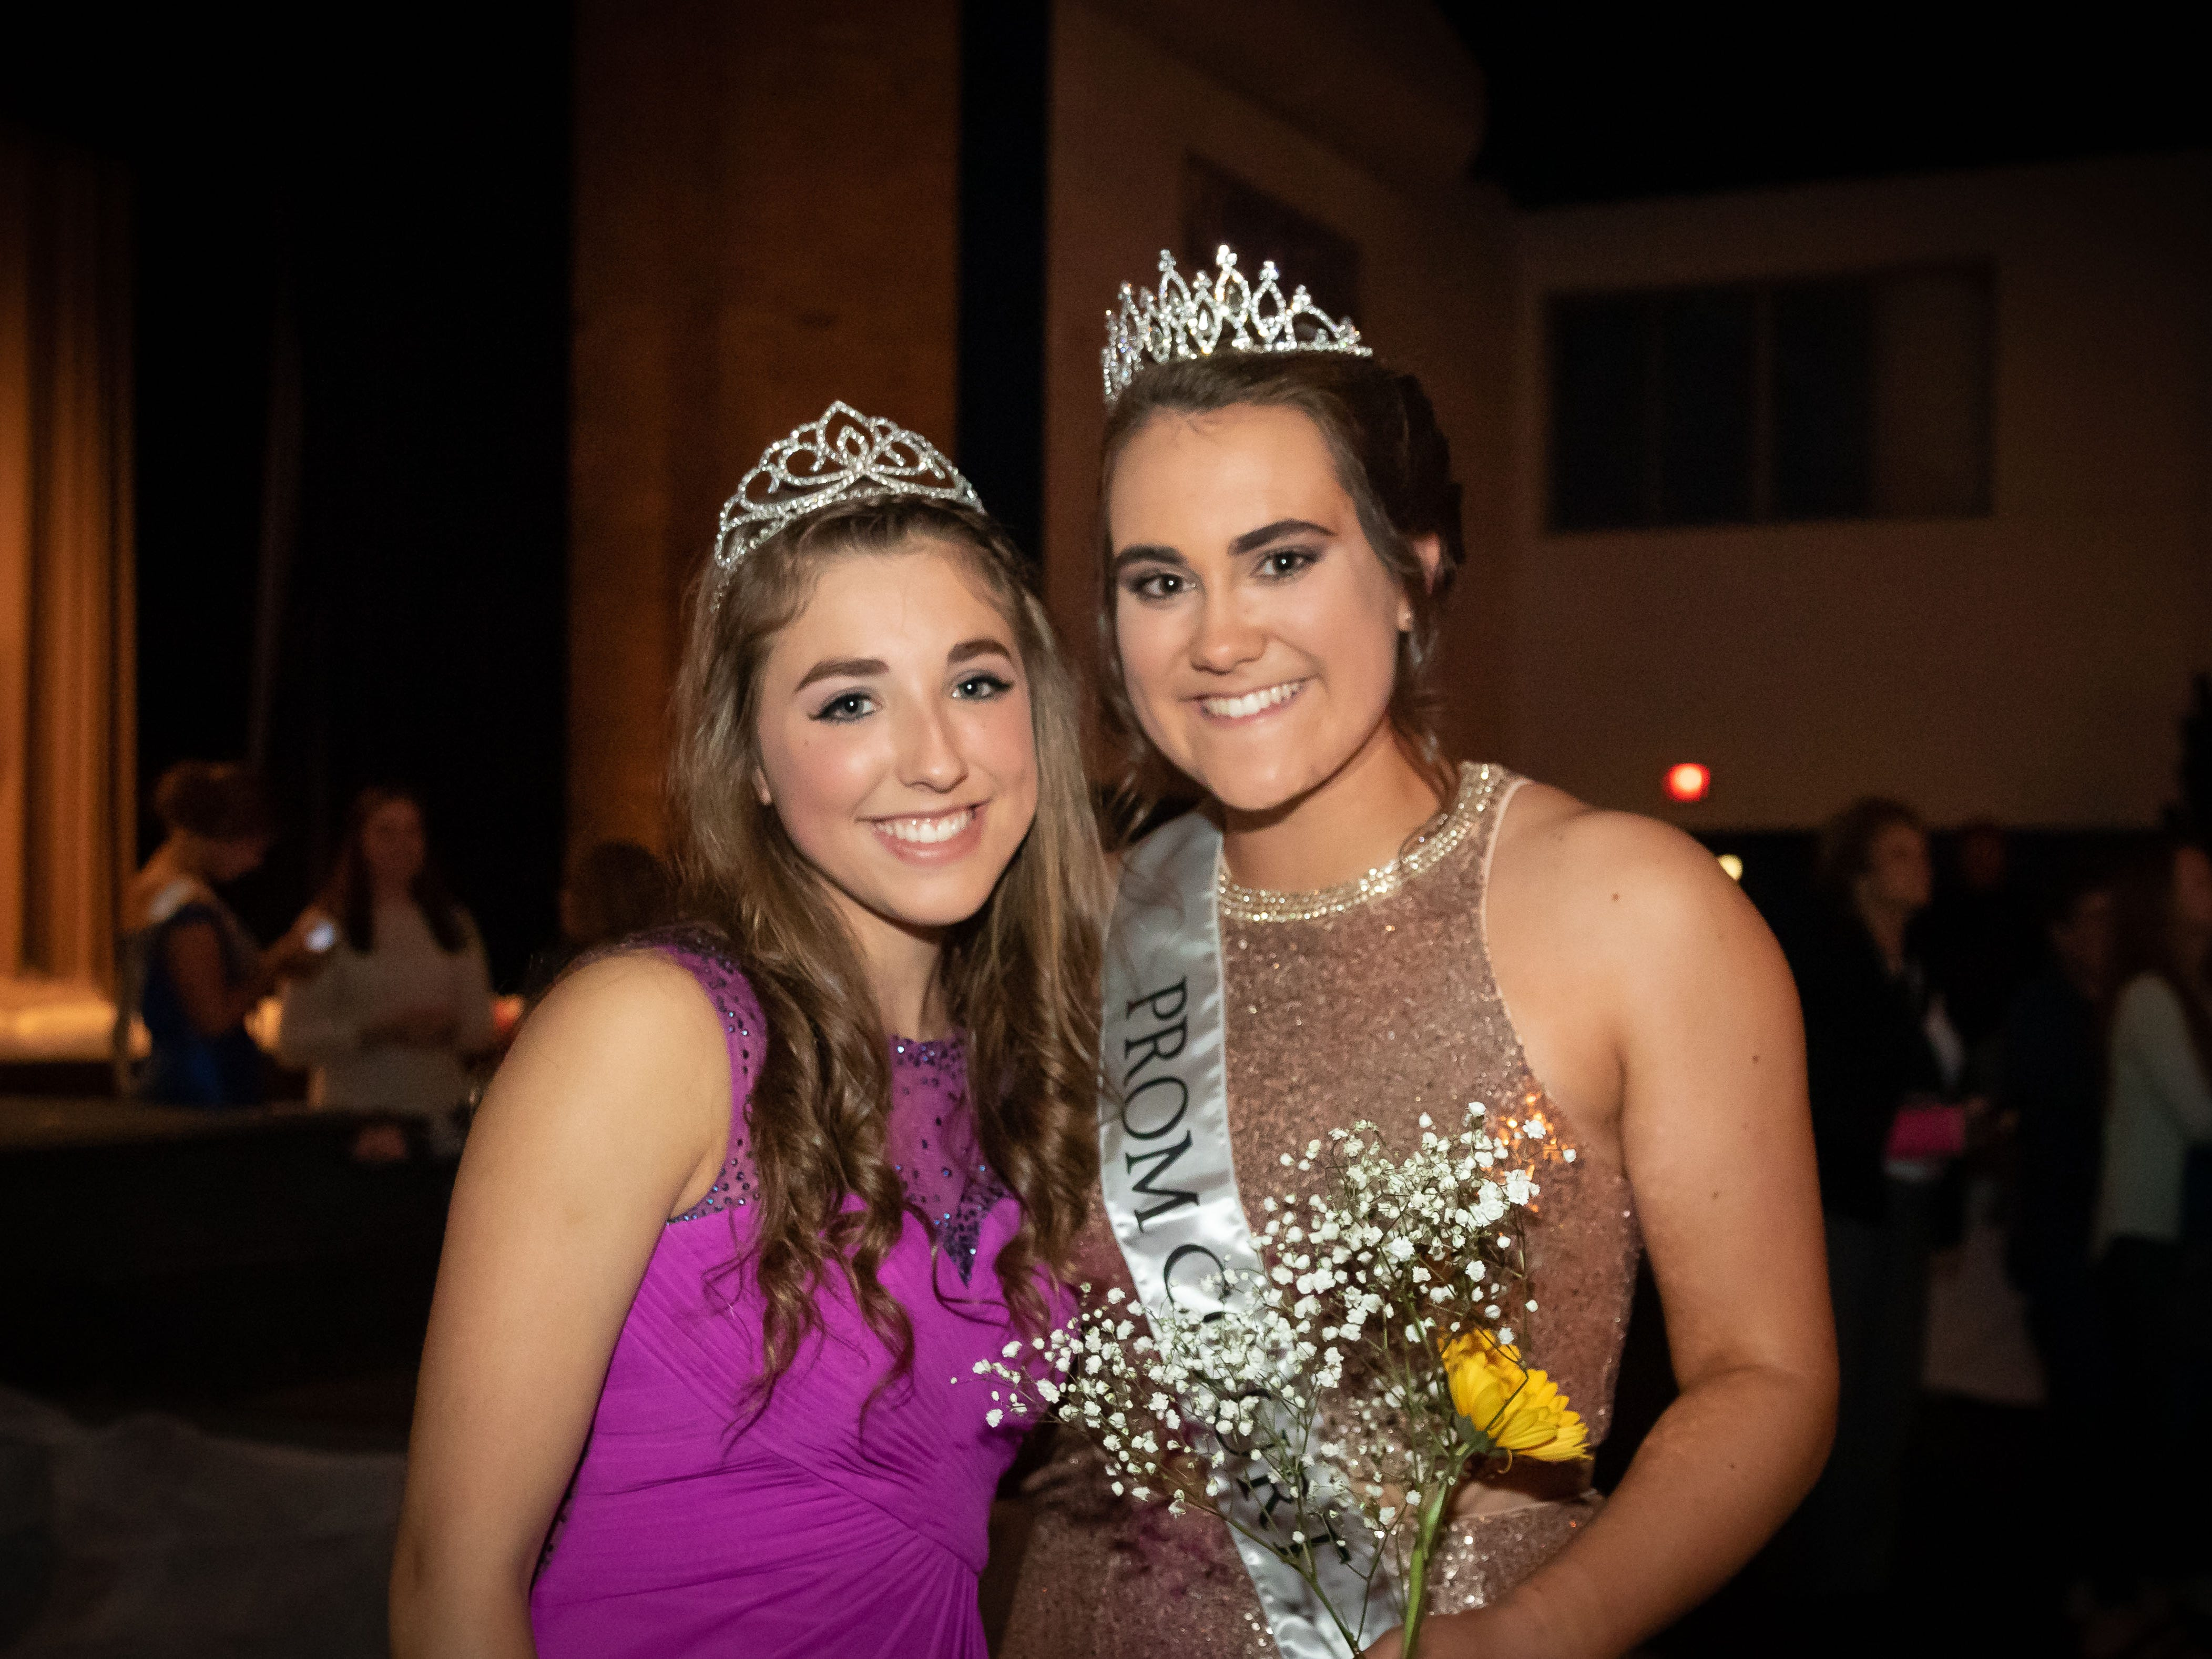 2018 Prom Queen Ellie Shaw and 2019 Prom Queen Calli Statz pose for a photo during the Assumption High School prom on Saturday, April 27, 2019, at the high school in Wisconsin Rapids.